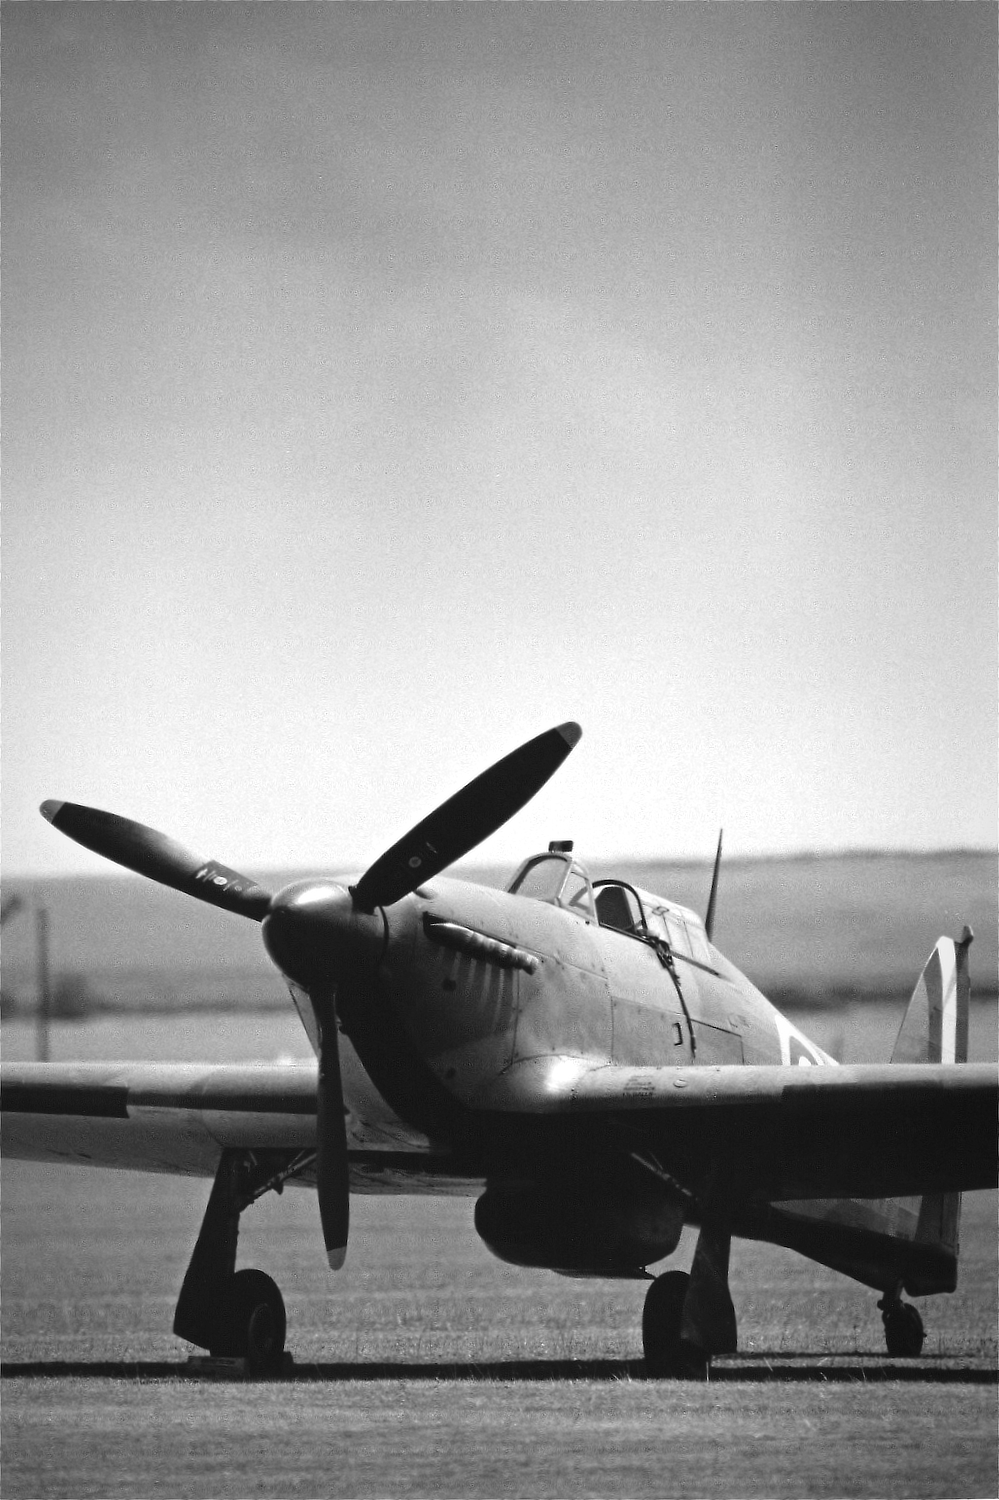 Black and white photo of a Hawker Hurricane at Duxford